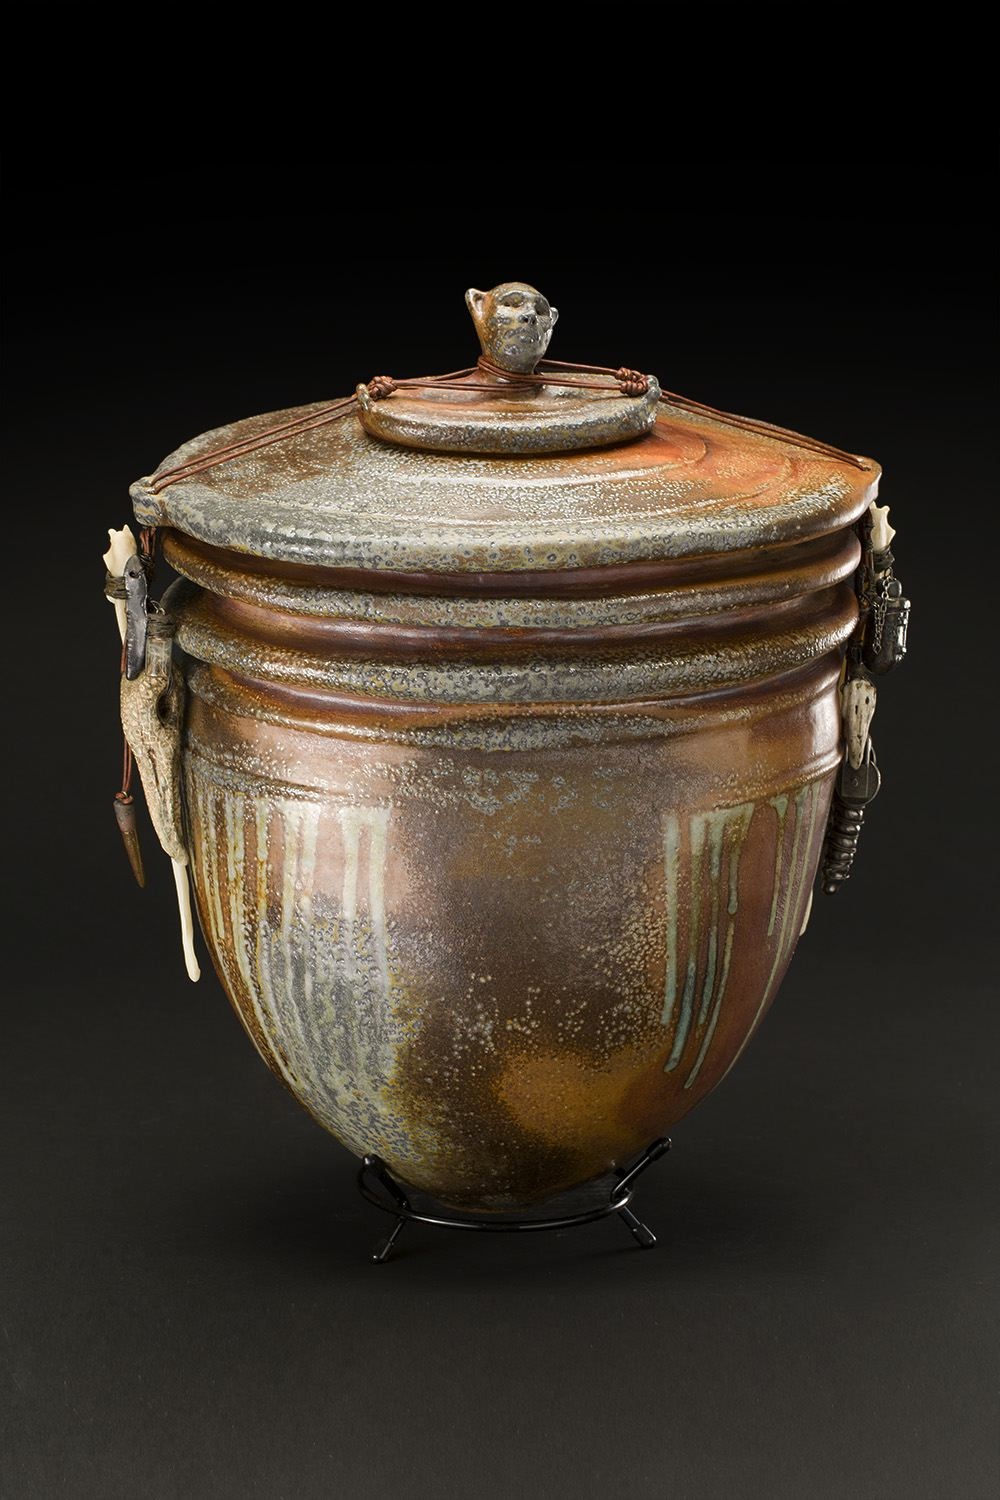 Melanie Ferguson    Battles Left Behind  , 2016 Hand built lidded vessel; stoneware, flashing slip, glaze, oxide stains, gas fired in soda, bone, glass, dandelion seed, wire, silver, leather 17 x 13.5 x 10 inches 43.2 x 34.3 x 25.4 cm MFe 34